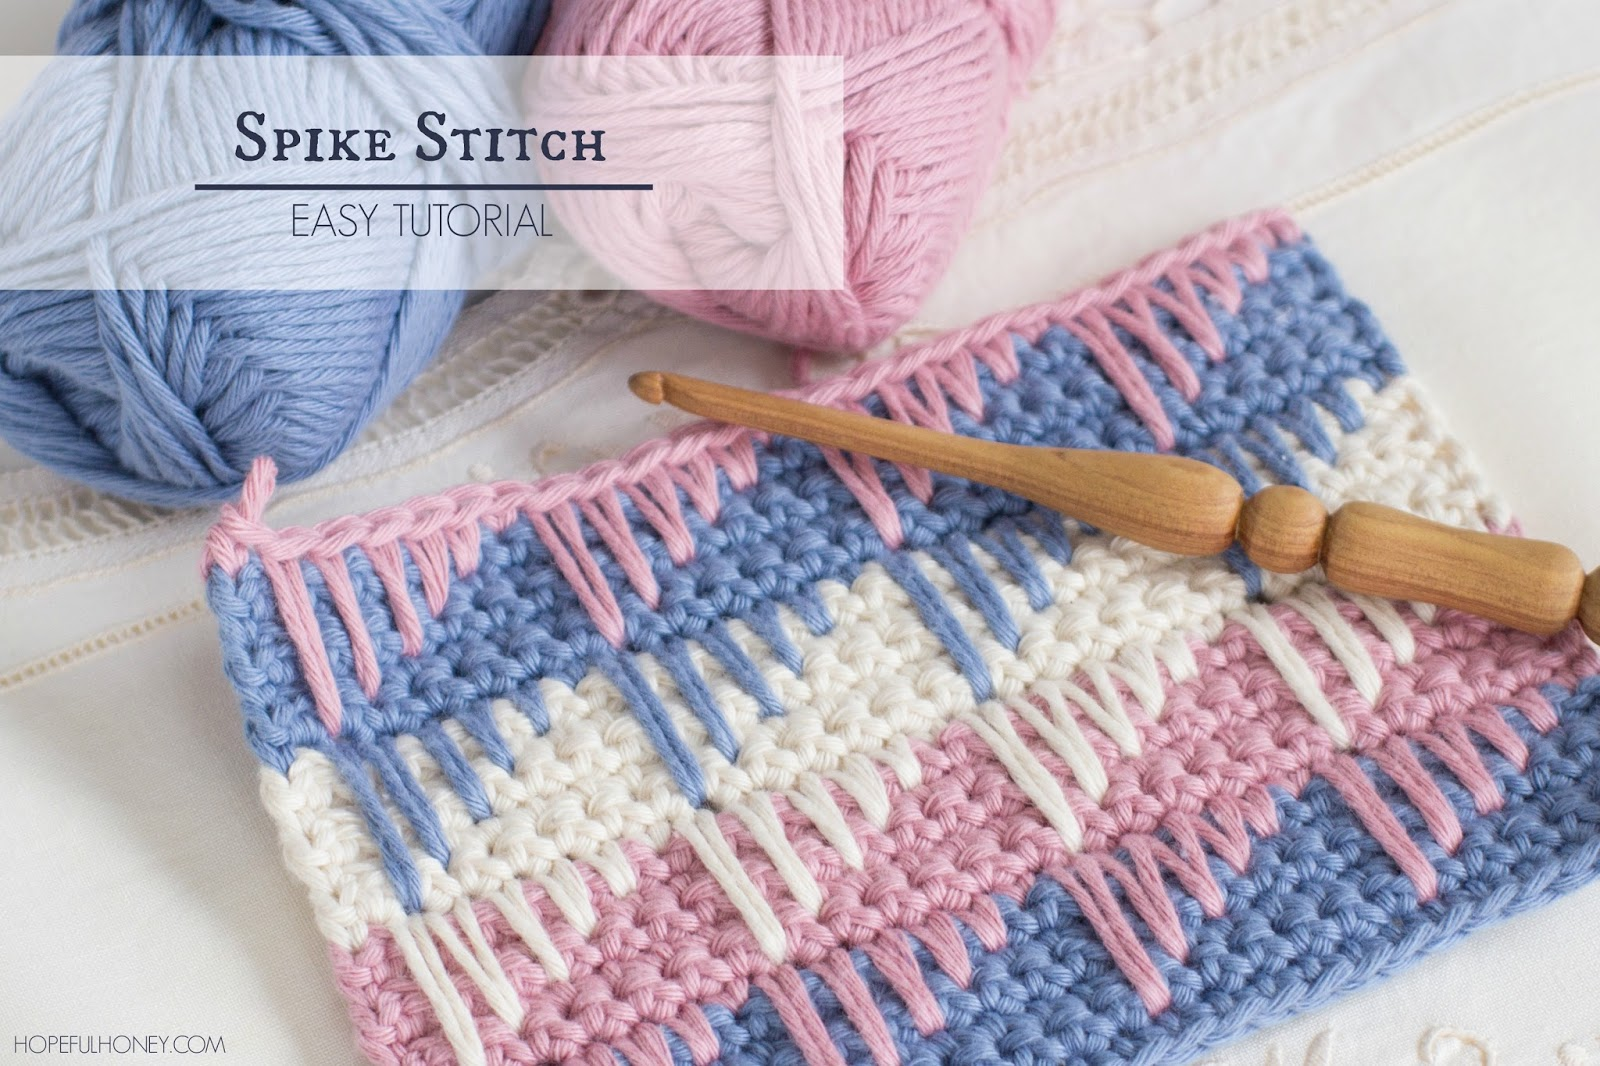 Crochet Stitches Video Tutorials : ... , Crochet, Create: How To: Crochet The Spike Stitch - Easy Tutorial